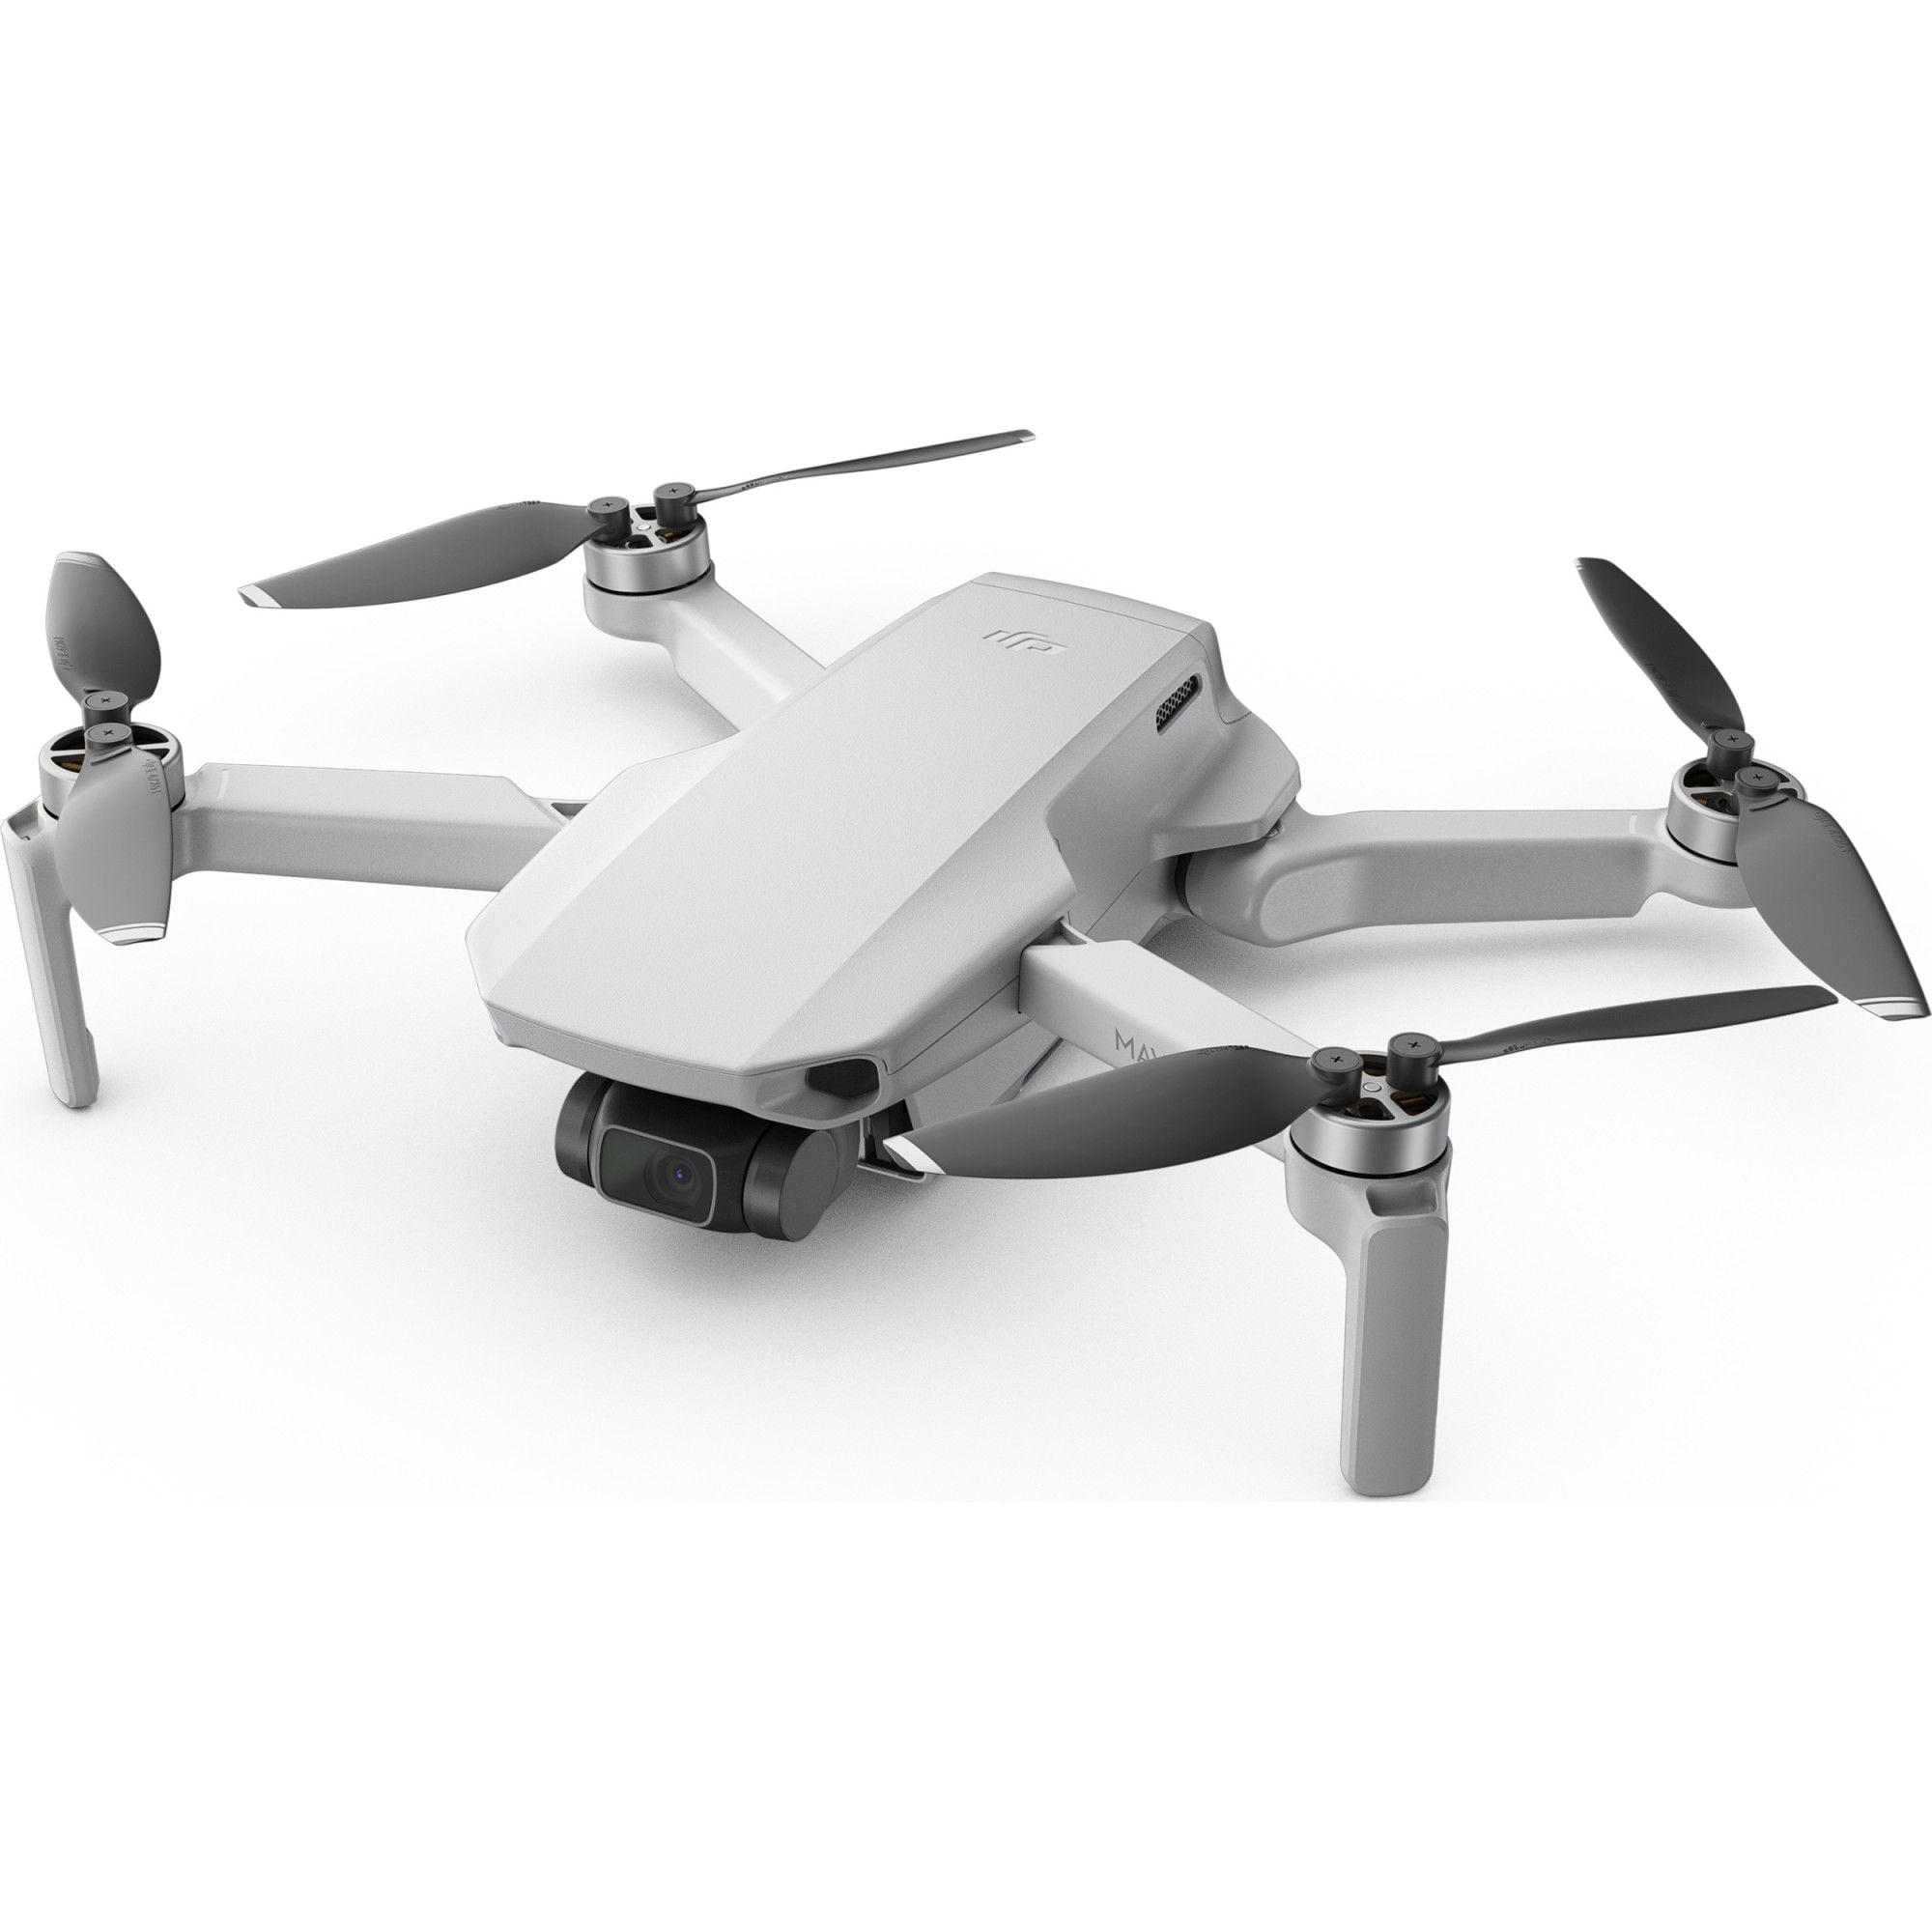 Drona DJI Mavic Mini, 2.7K video, Autonomie 30min, 249g, White